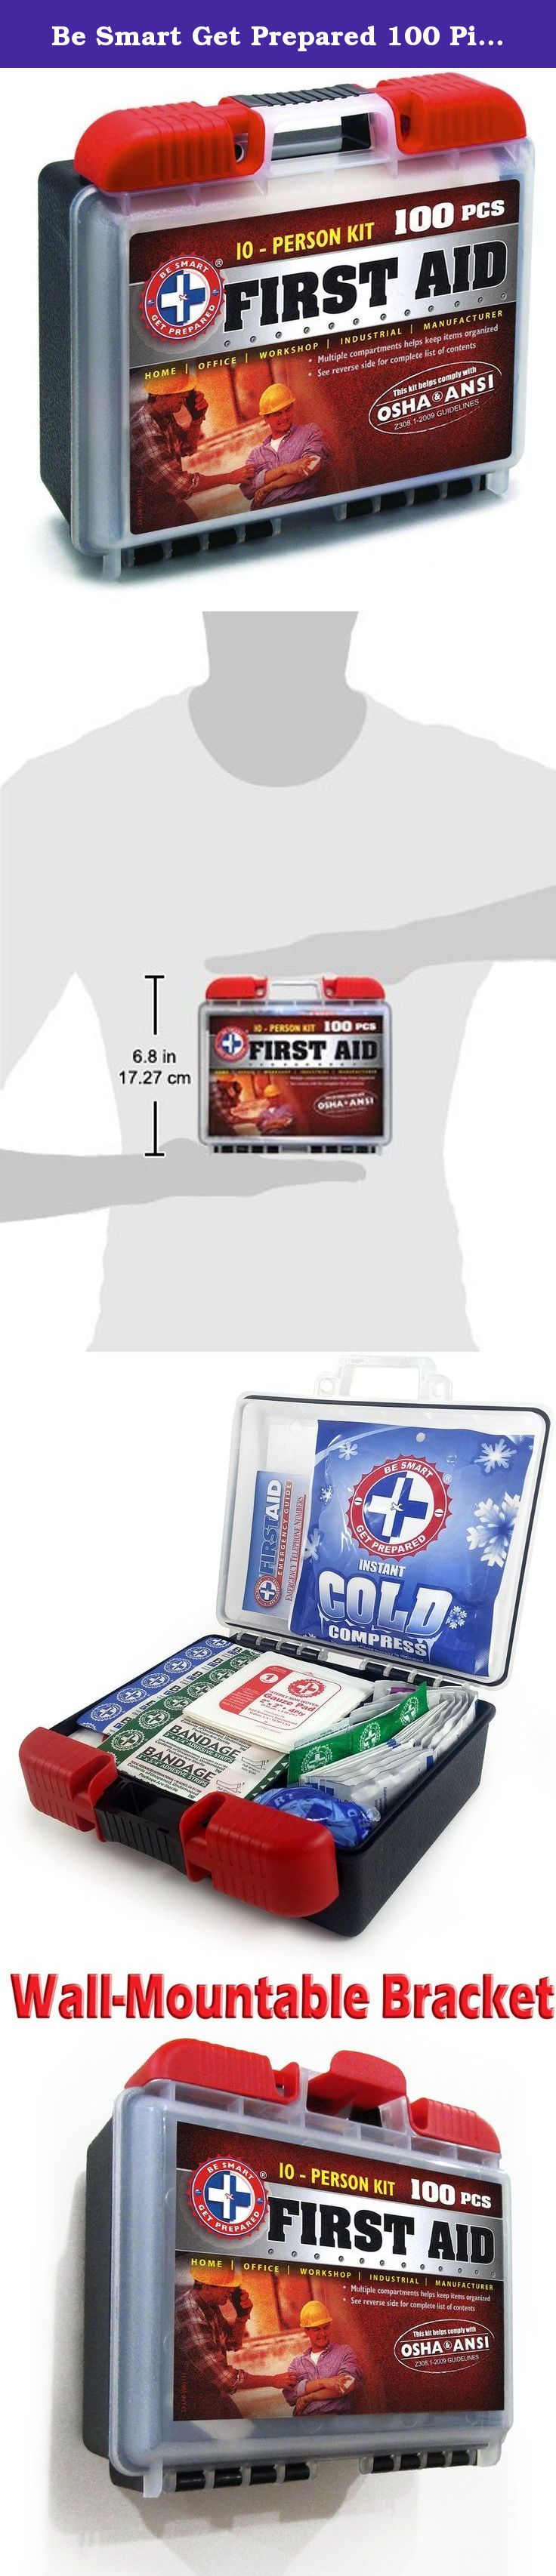 Be Smart Get Prepared 100 Piece First Aid Kit, Exceeds